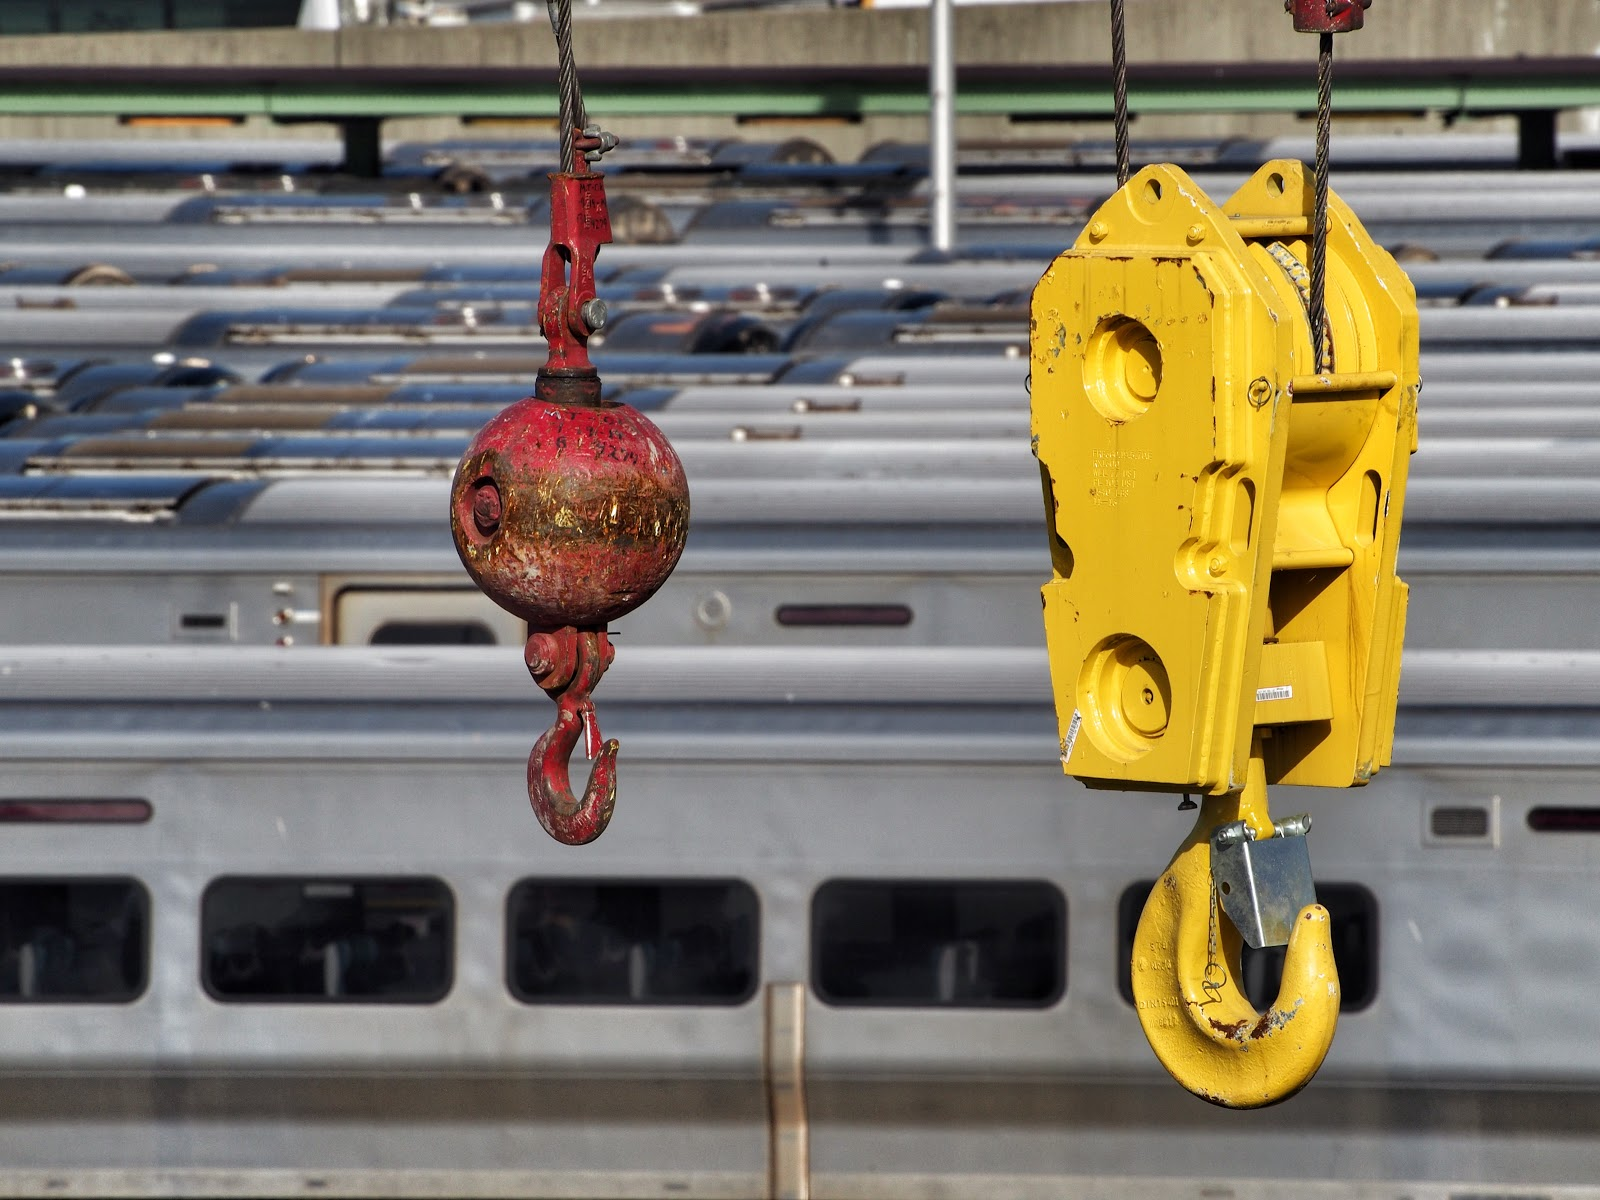 Just Two Hooks Hanging Out at the Yard #twohooks #hudsonyard #crane #mantiscrane #nyc #construction #LIRR #trains 2014